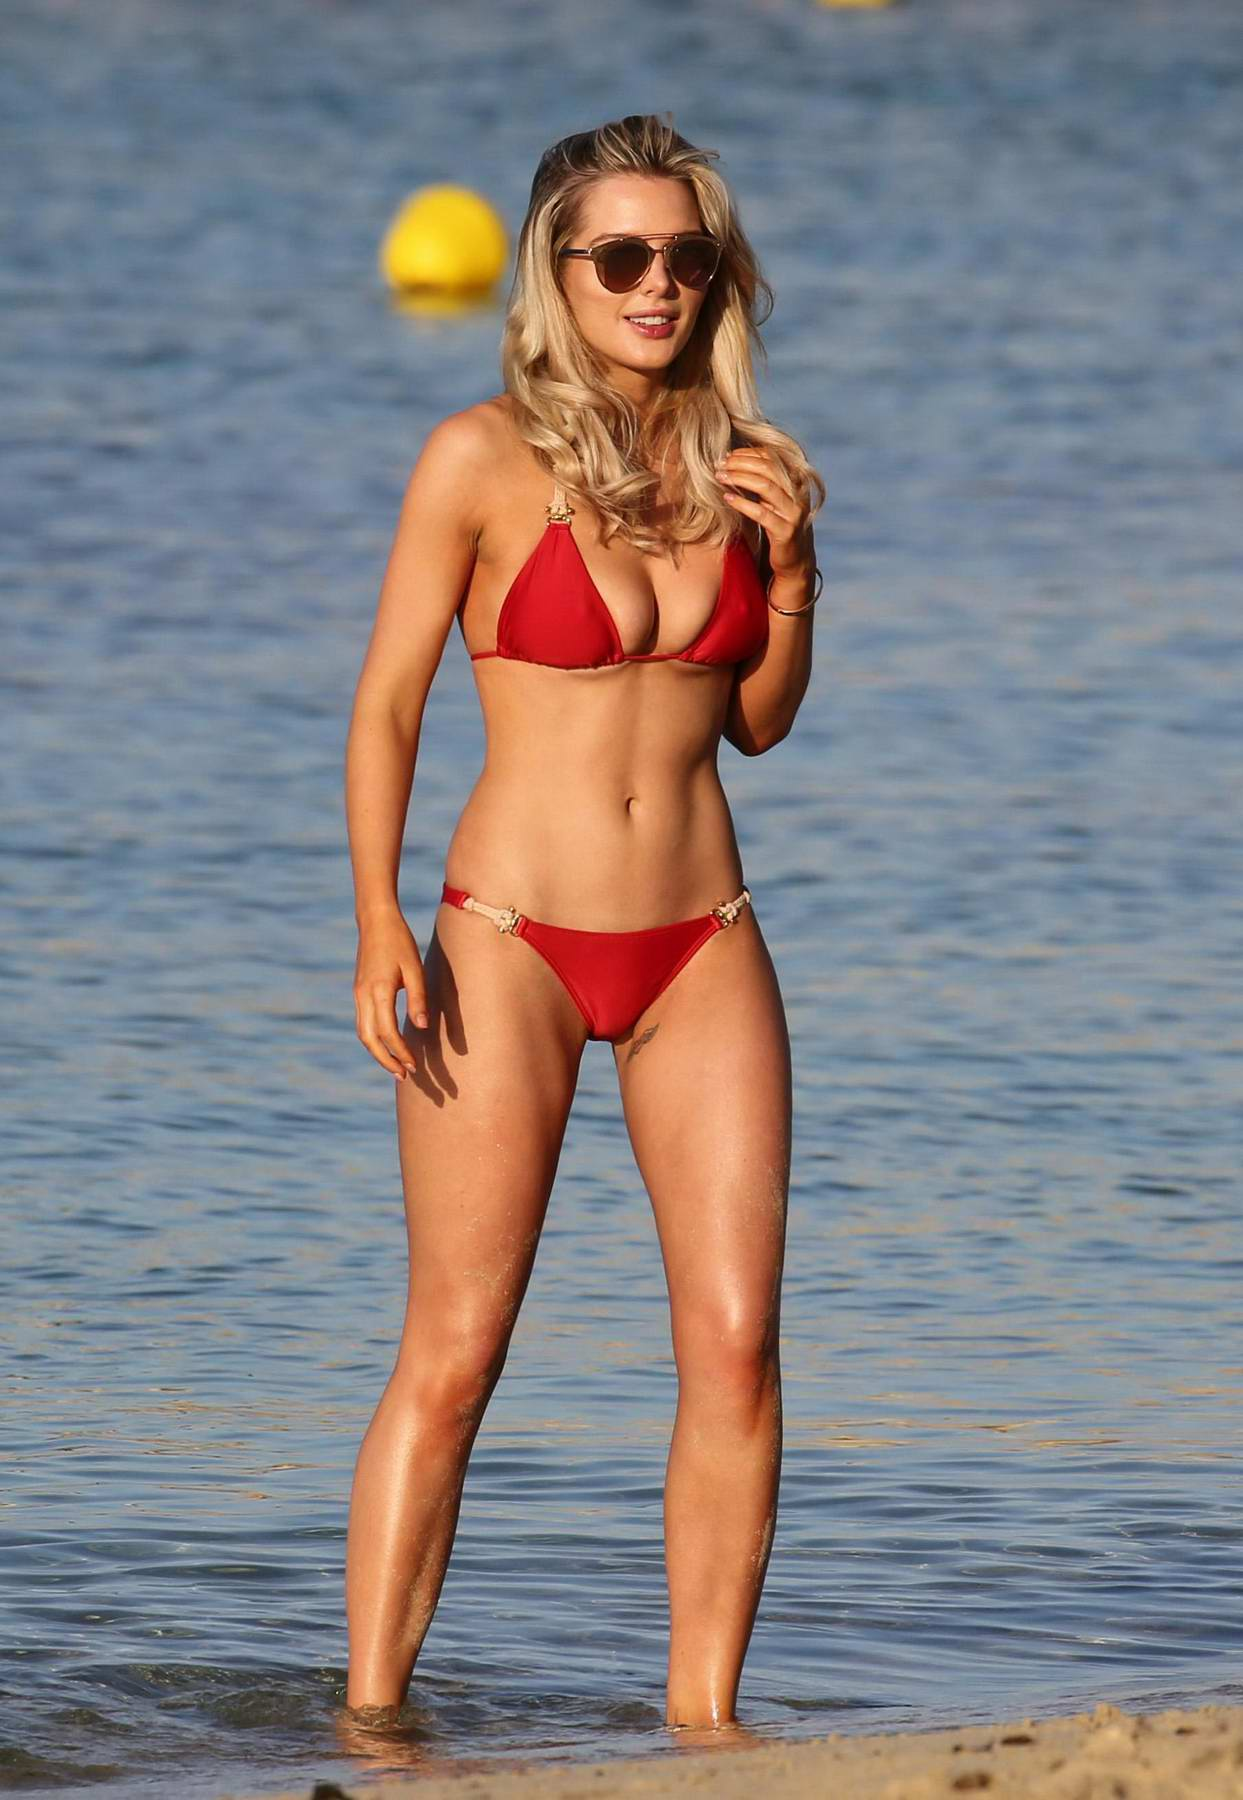 Helen flanagan in a red bikini enjoying her holidays on the beach in Dubai